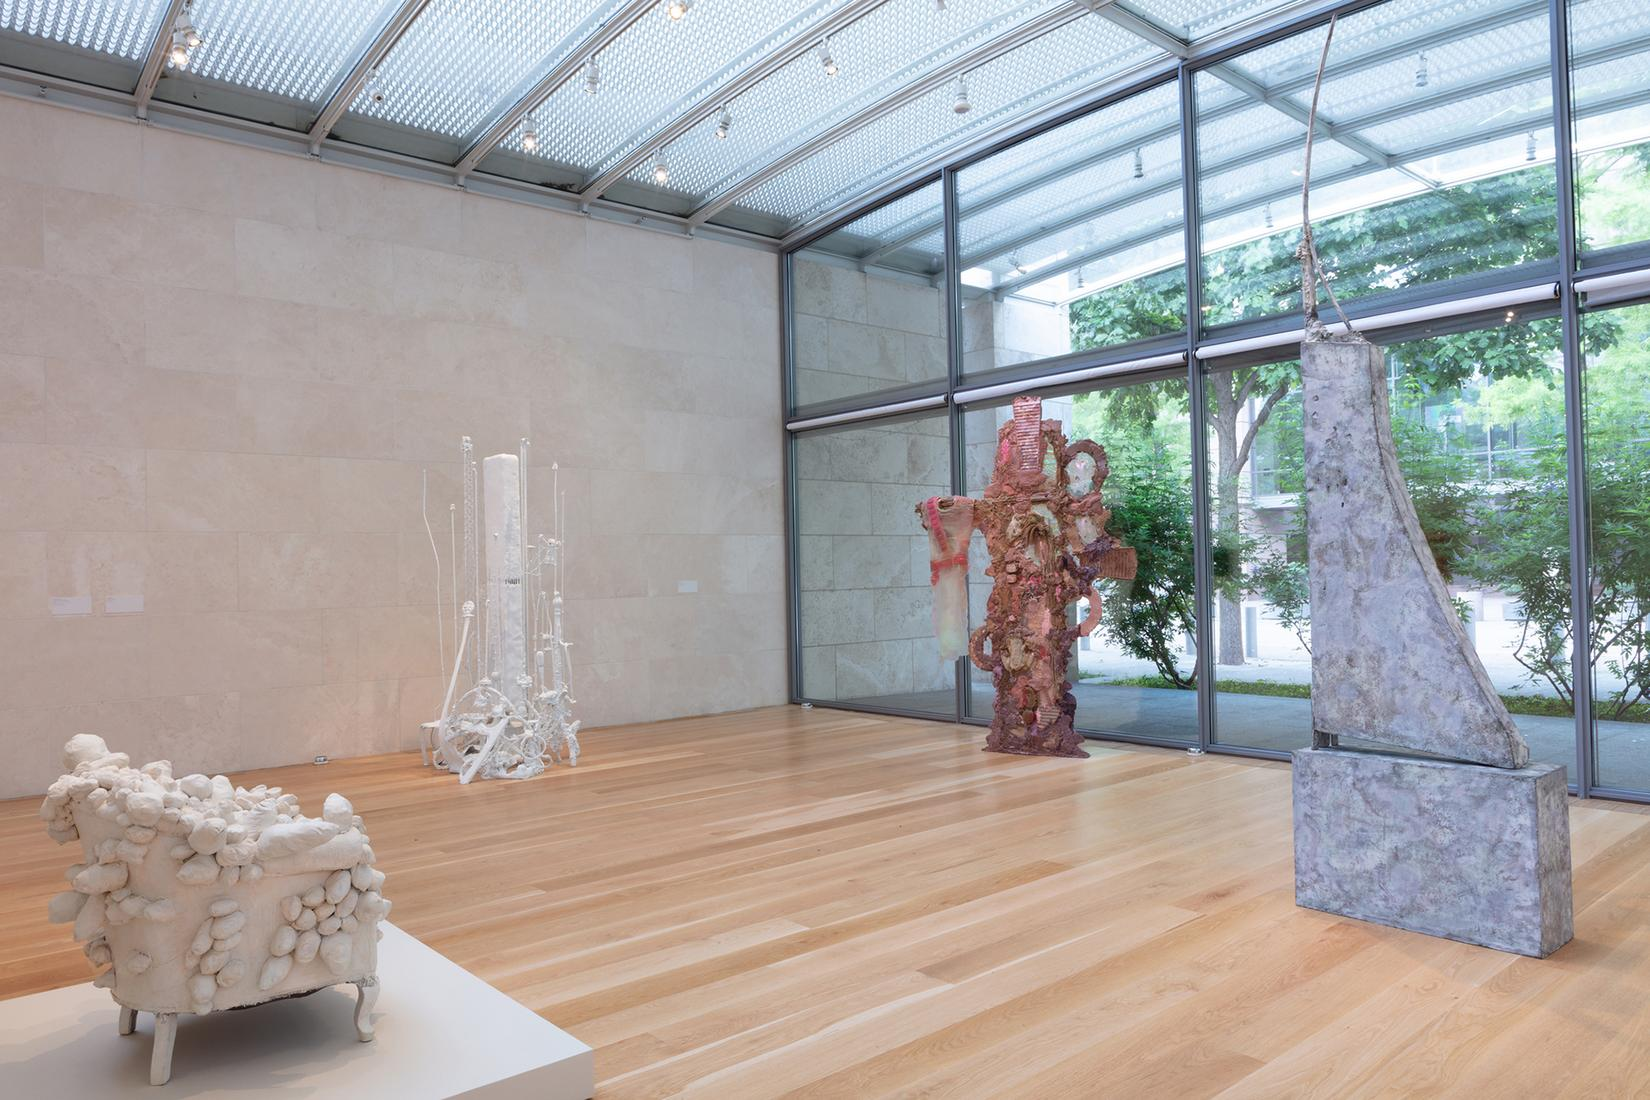 May 11 — August 18, 2019 - Nasher Sculpture Park, Dallas - Pairings: Sculpture in the Nasher & Rachofsky Collections -  - Exhibitions